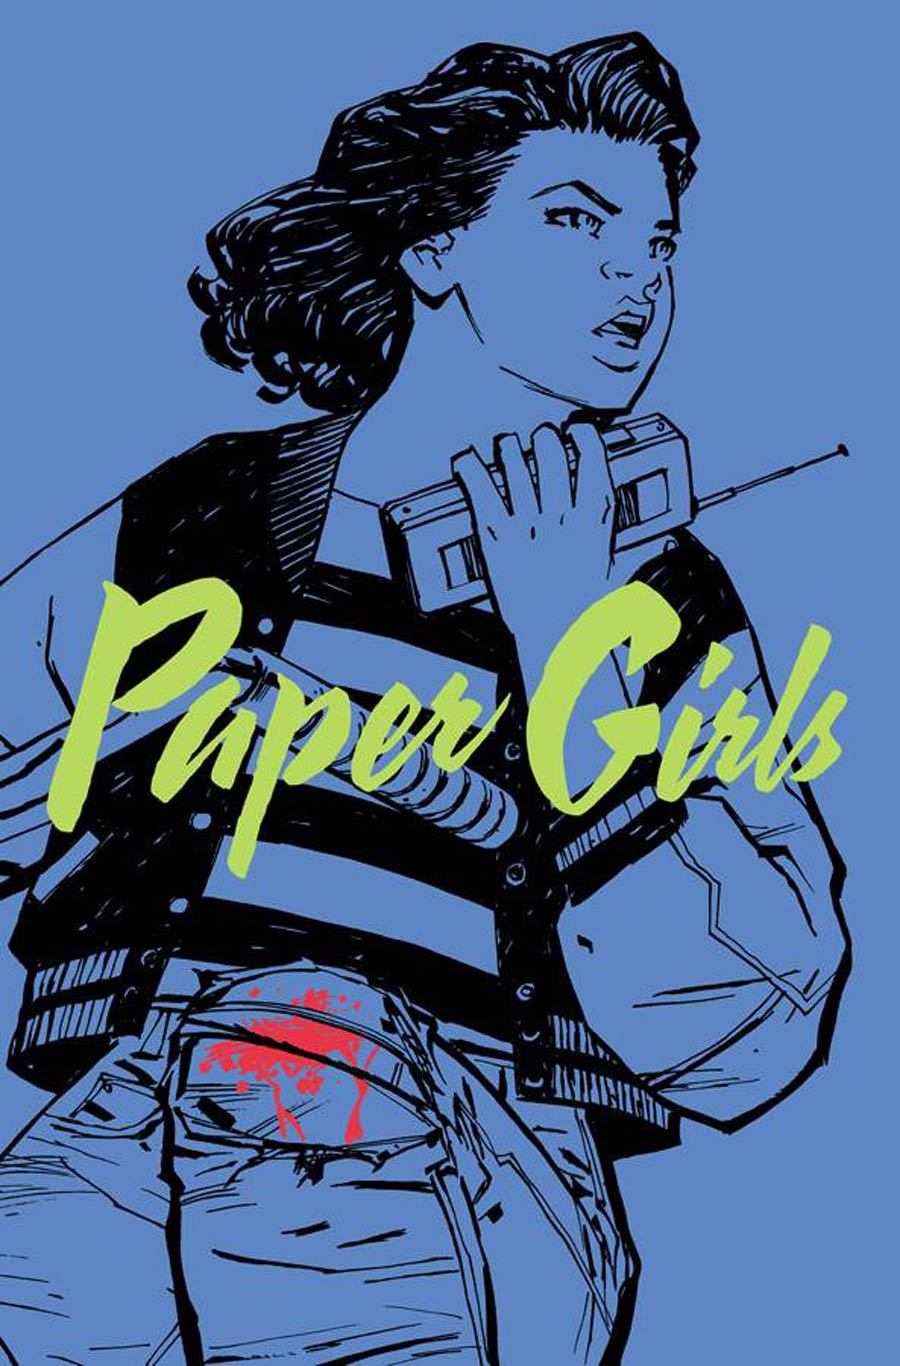 paper girls 4 Paper girls vol 1 #4 january, 2016 cover artists cliff chiang writers brian k vaughan pencilers cliff chiang inkers cliff chiang colourists matt wilson letterers jared k fletcher country united states of america original price: 299 previous issue next issue paper girls #3 paper girls #5 i.